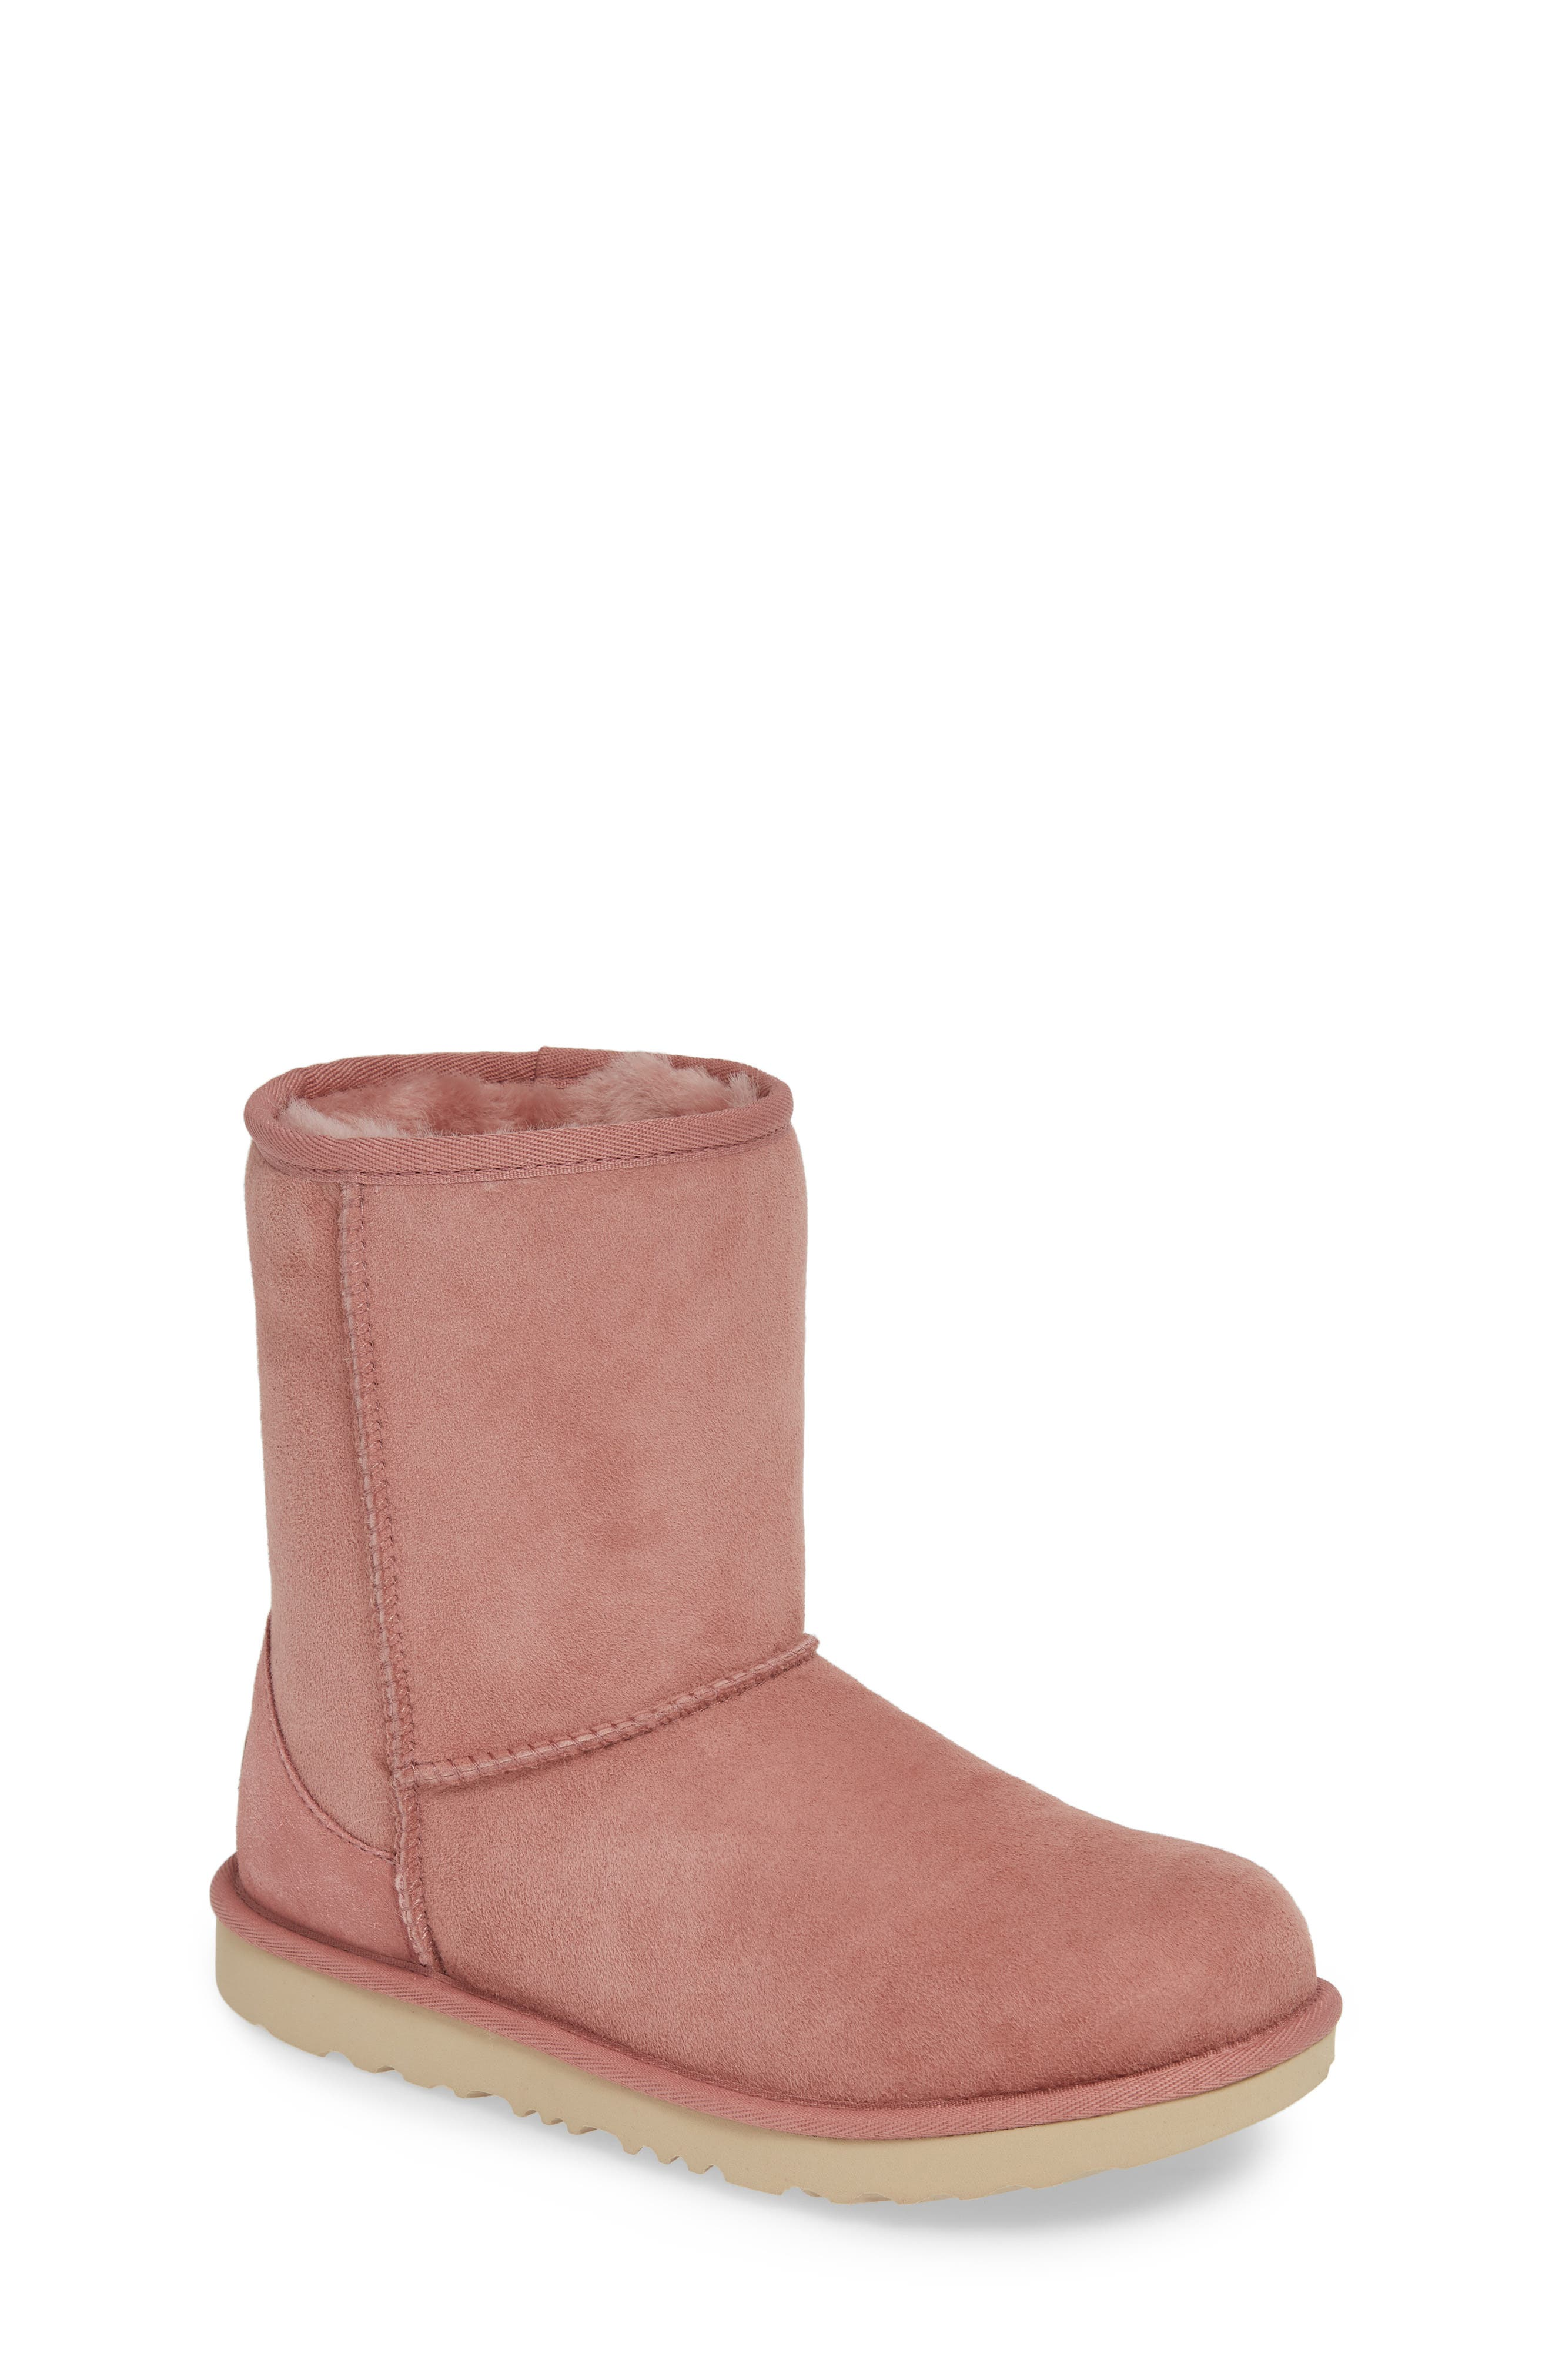 Classic Short II Water Resistant Genuine Shearling Boot, Main, color, PINK DAWN